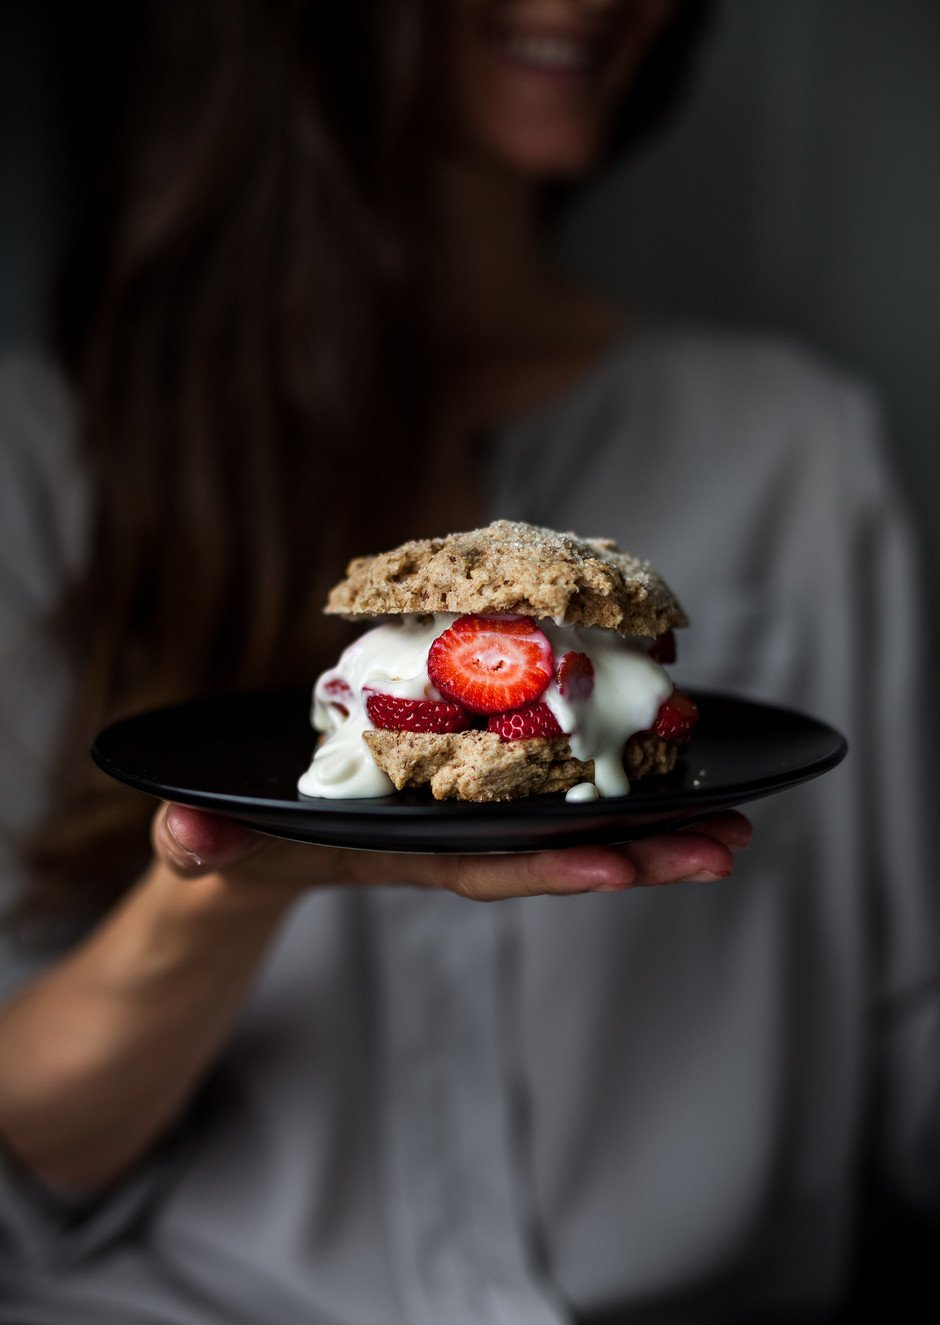 a person holding a strawberry shortcake on a black plate.